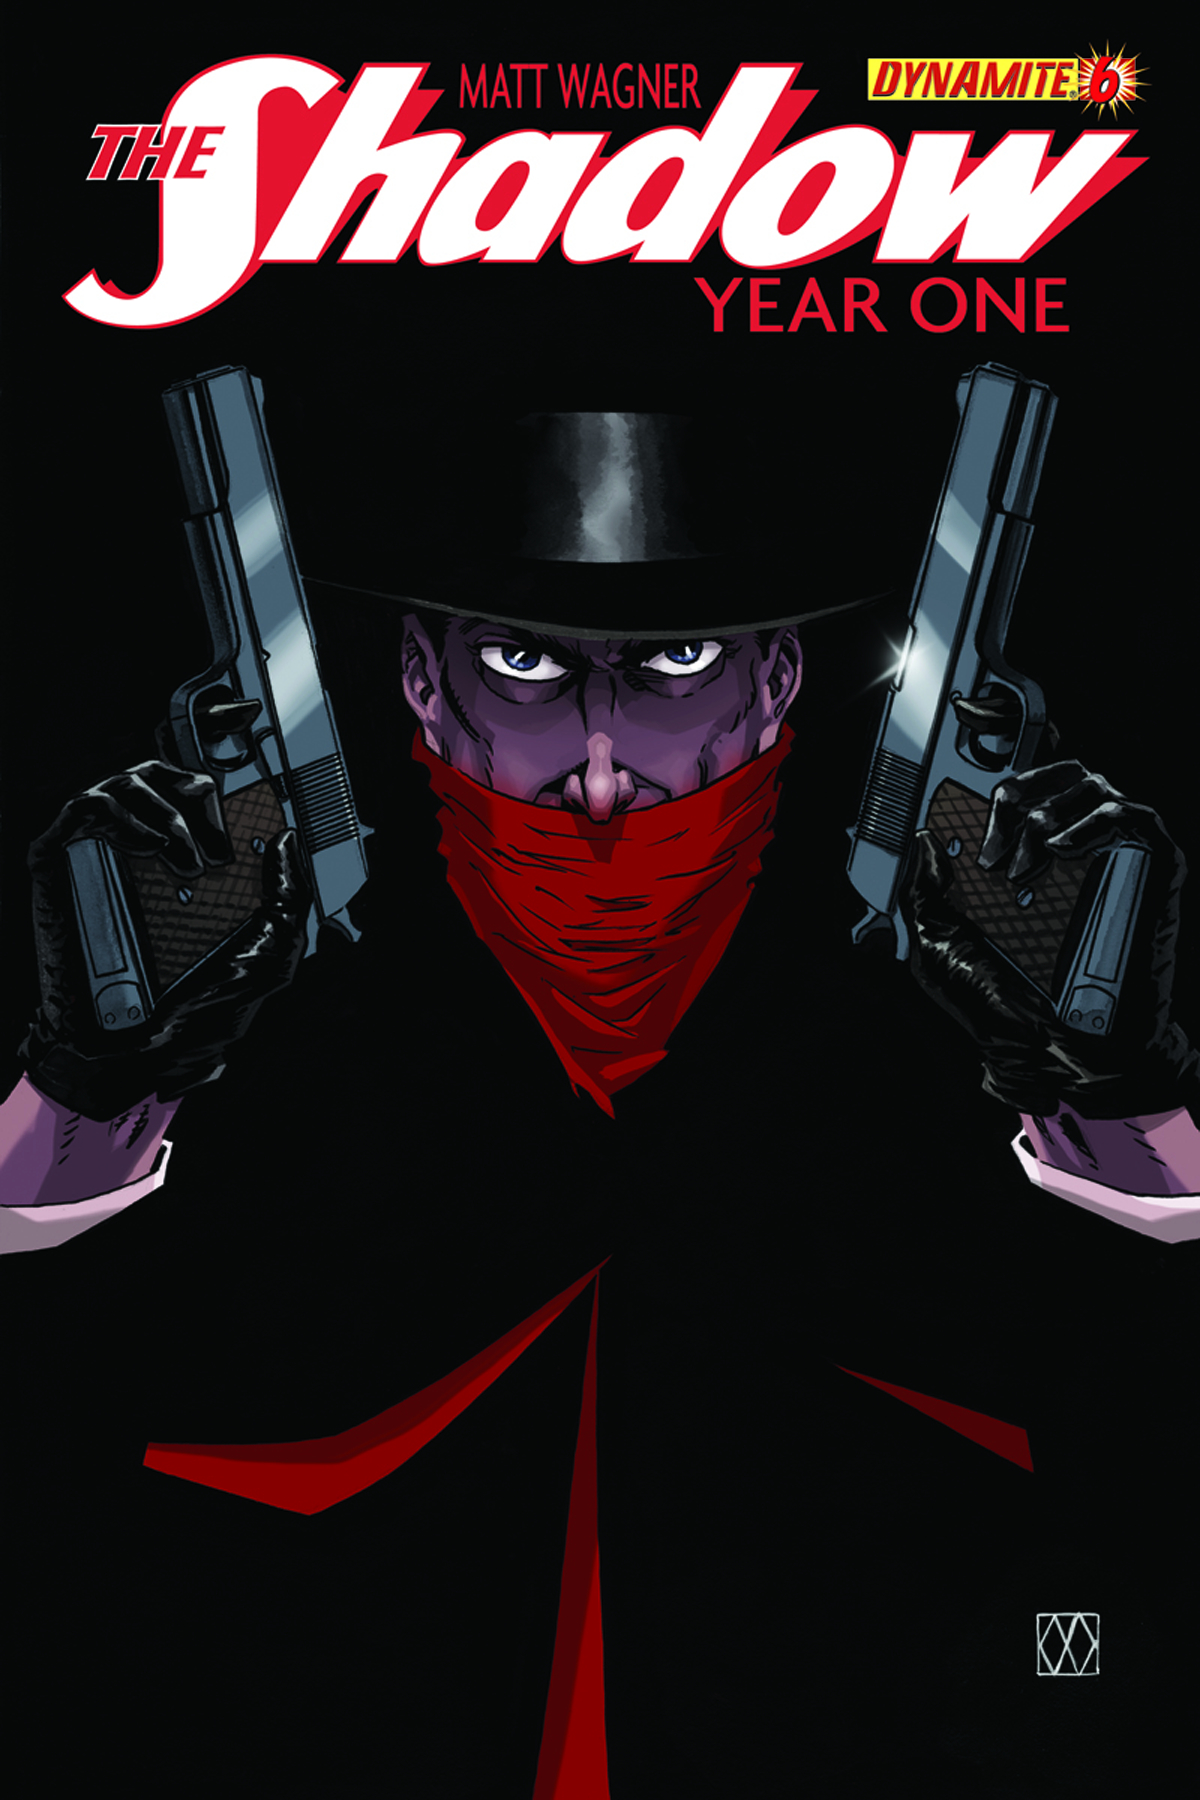 SHADOW YEAR ONE #6